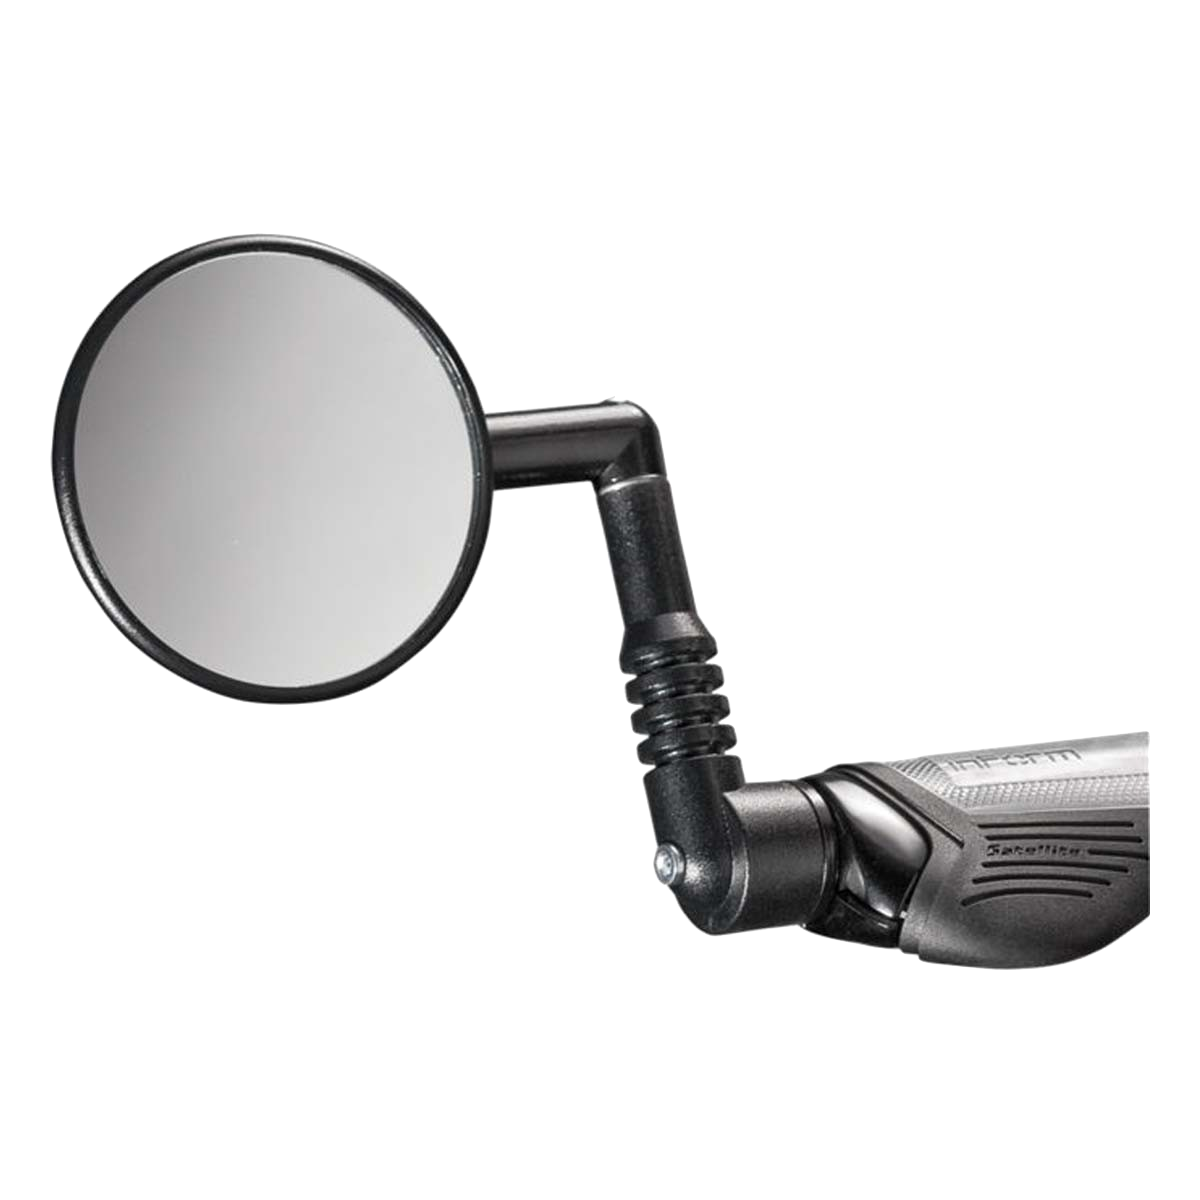 Mirror Mirrycle Scooter Bar End Mirror Black